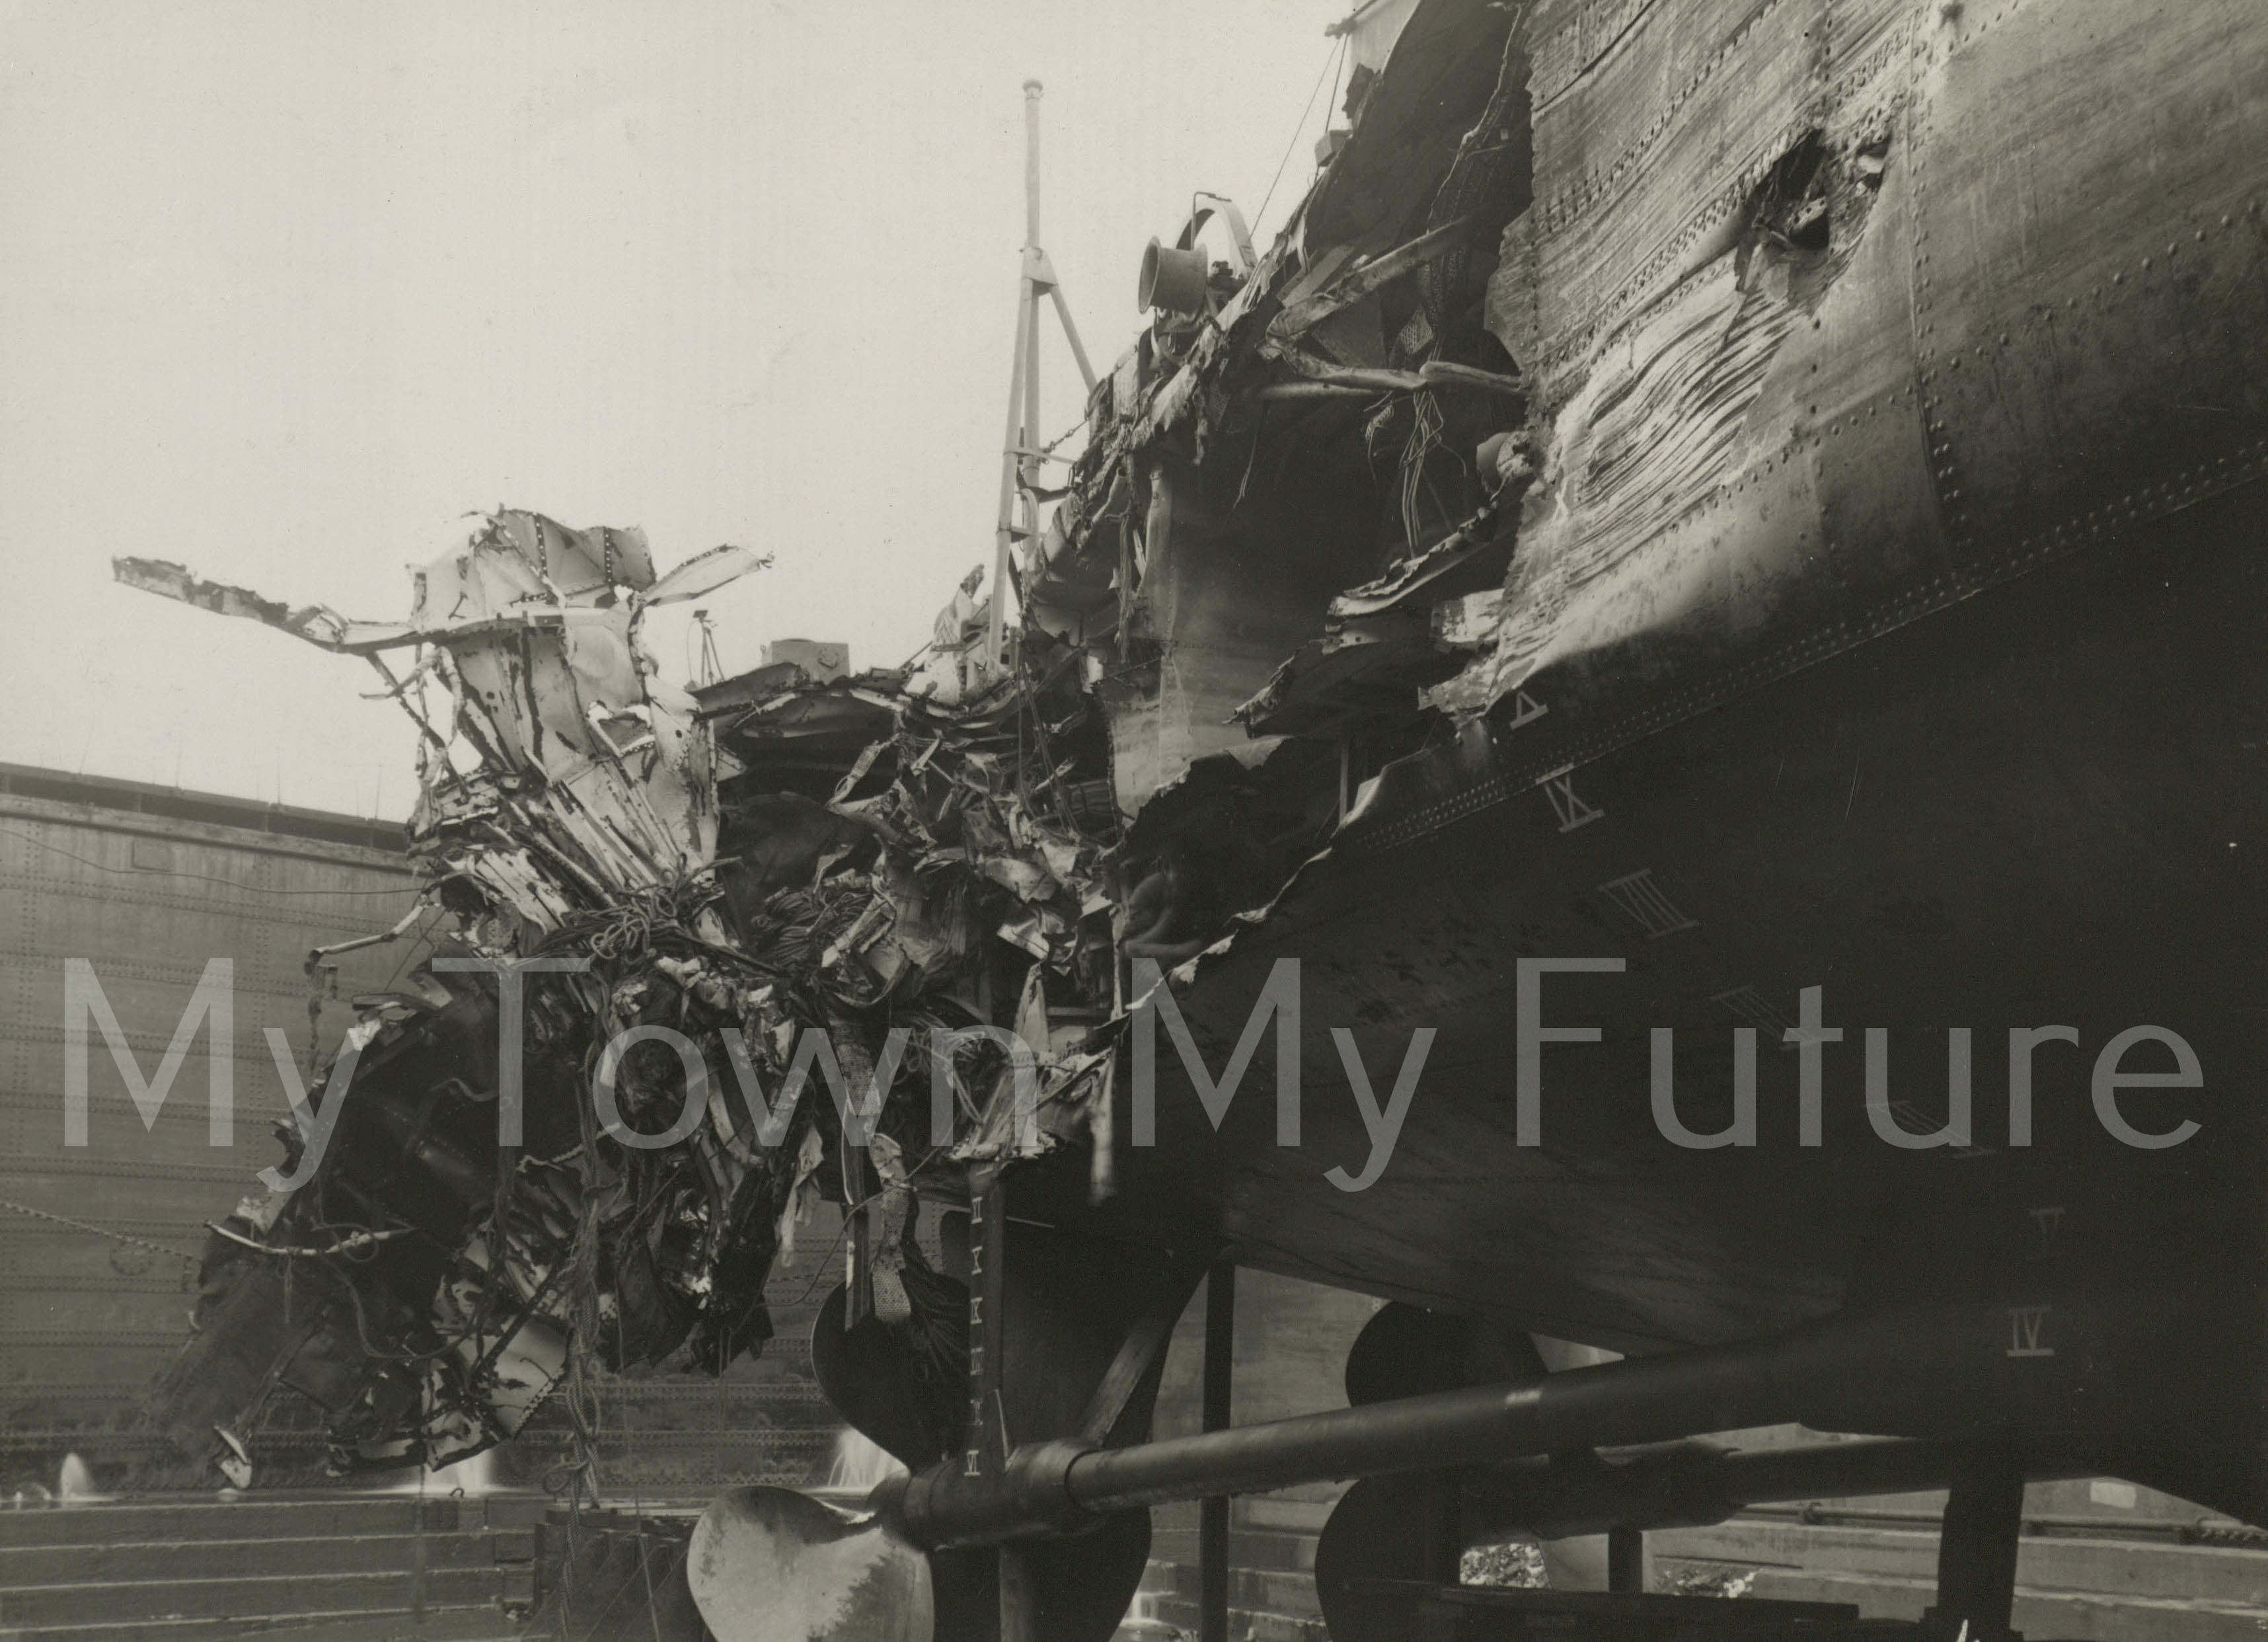 Smiths Dock Ships HMS Lavelin WWII Repair